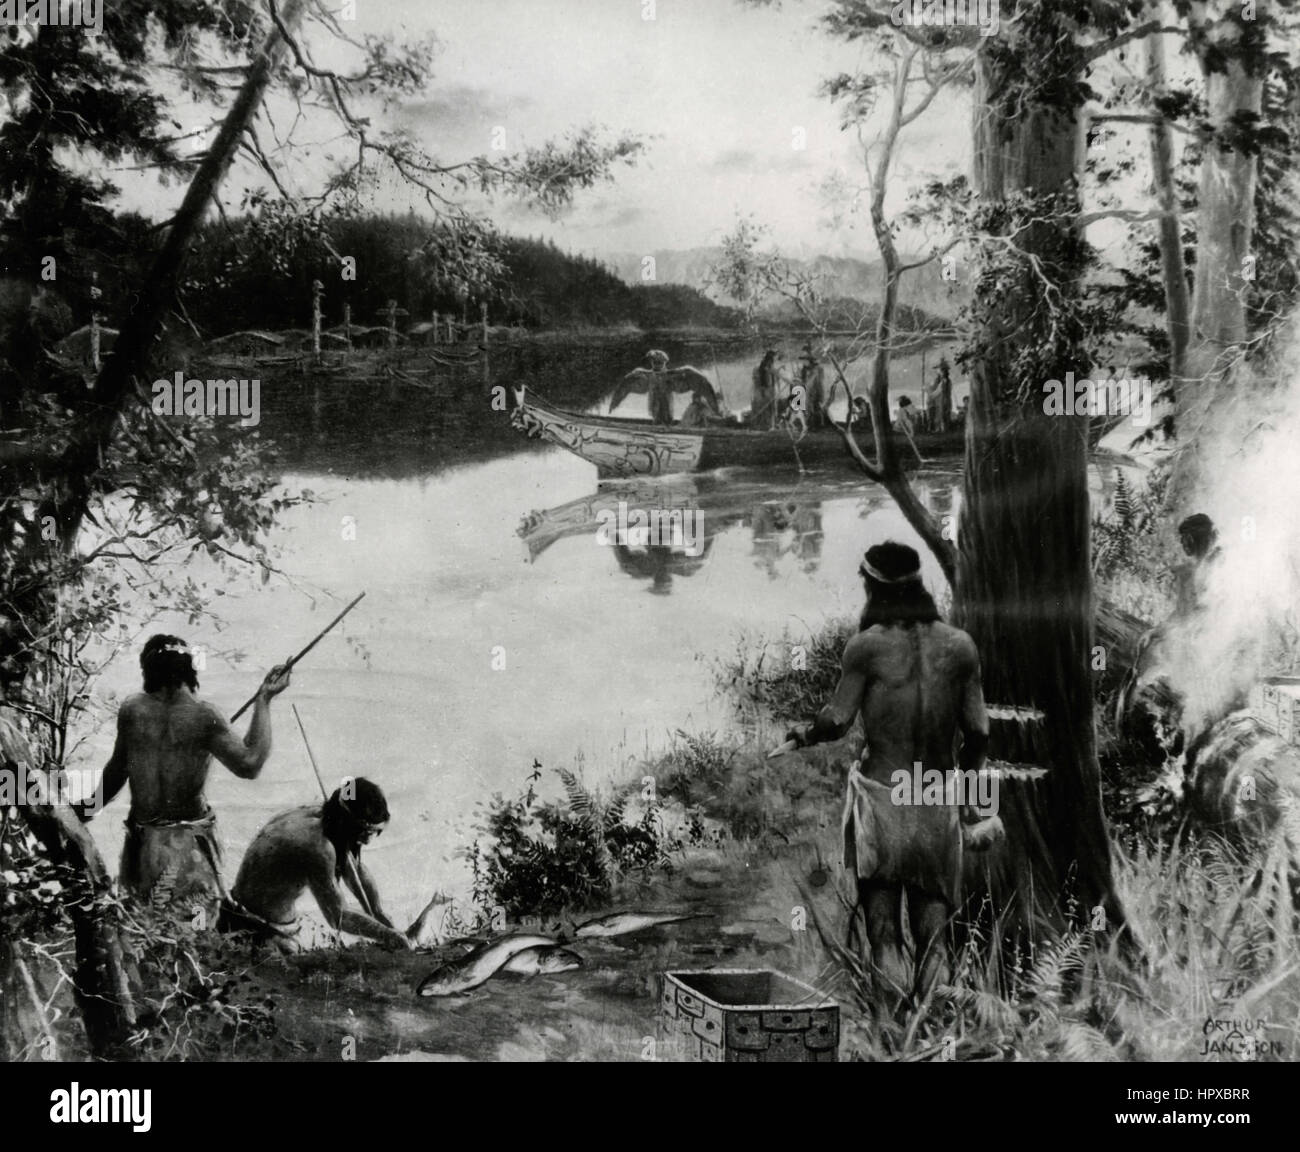 Native American Indian along the river, painting by Arthur Jansson - Stock Image